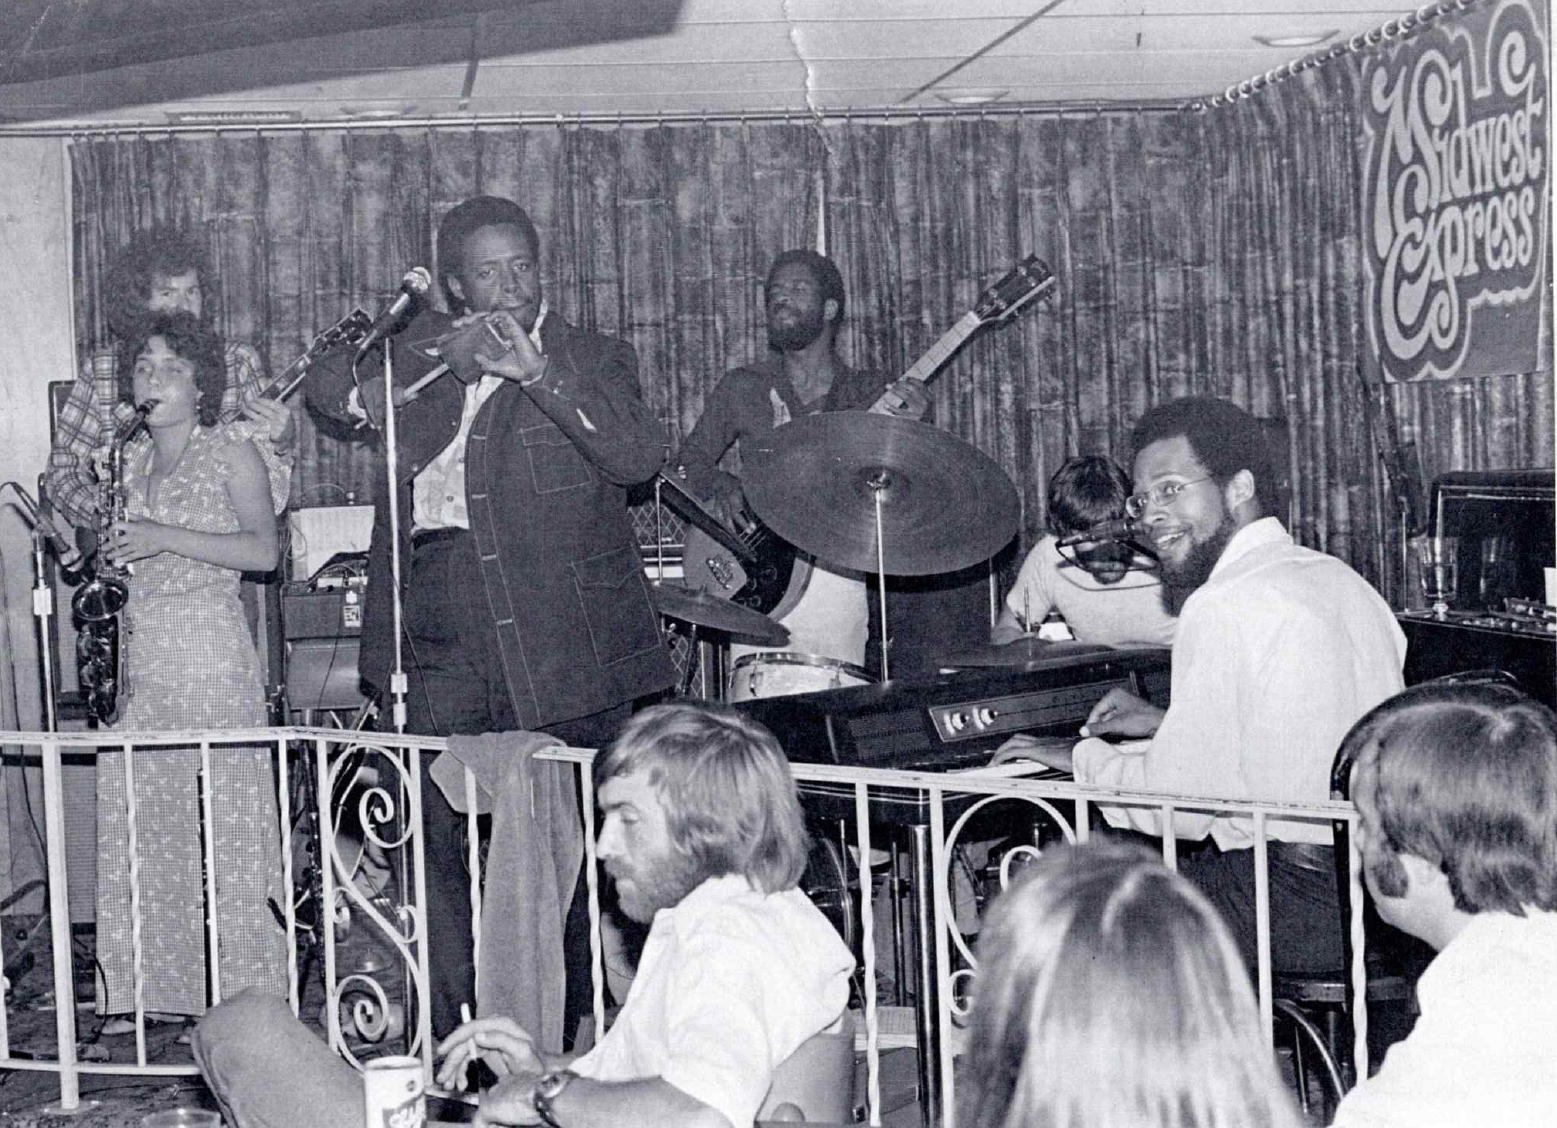 Midwest Express playing a gig in 1976. From far left, Marcia Miget is on saxophone, with Danny Nicholson behind her on guitar and Big Mike Edwards next to her at the mic. Dartanyan Brown (against the back wall) is on bass, John Grguric is on drums, and Bobby Parker is seated at the keyboard